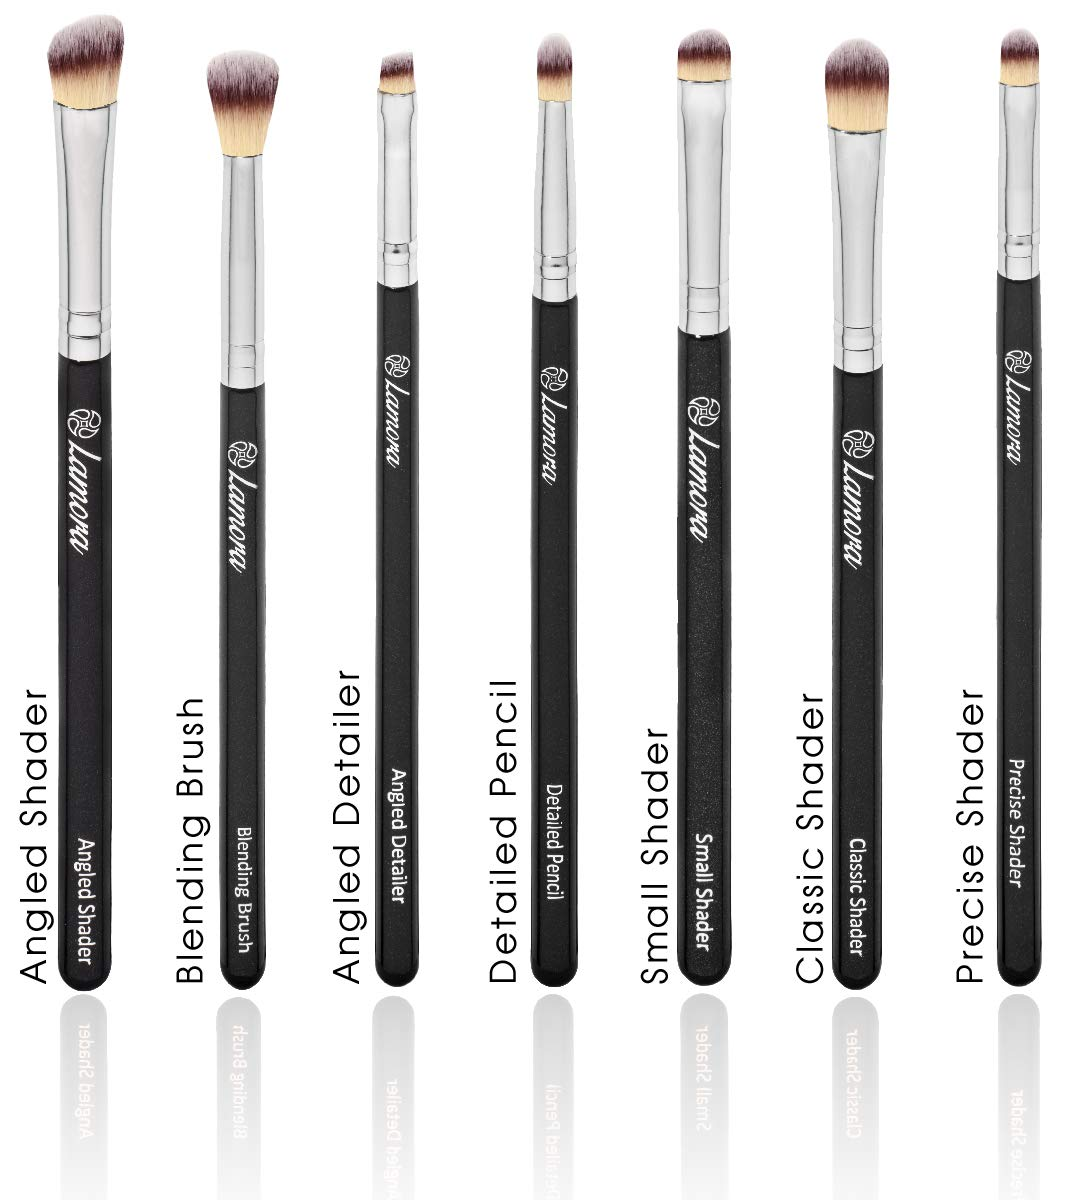 Amazon.com: Makeup Eye Brush Set - Eyeshadow Eyeliner Blending Crease Kit - Best Choice 7 Essential Makeup Brushes - Pencil, Shader, Tapered, Definer - Last ...